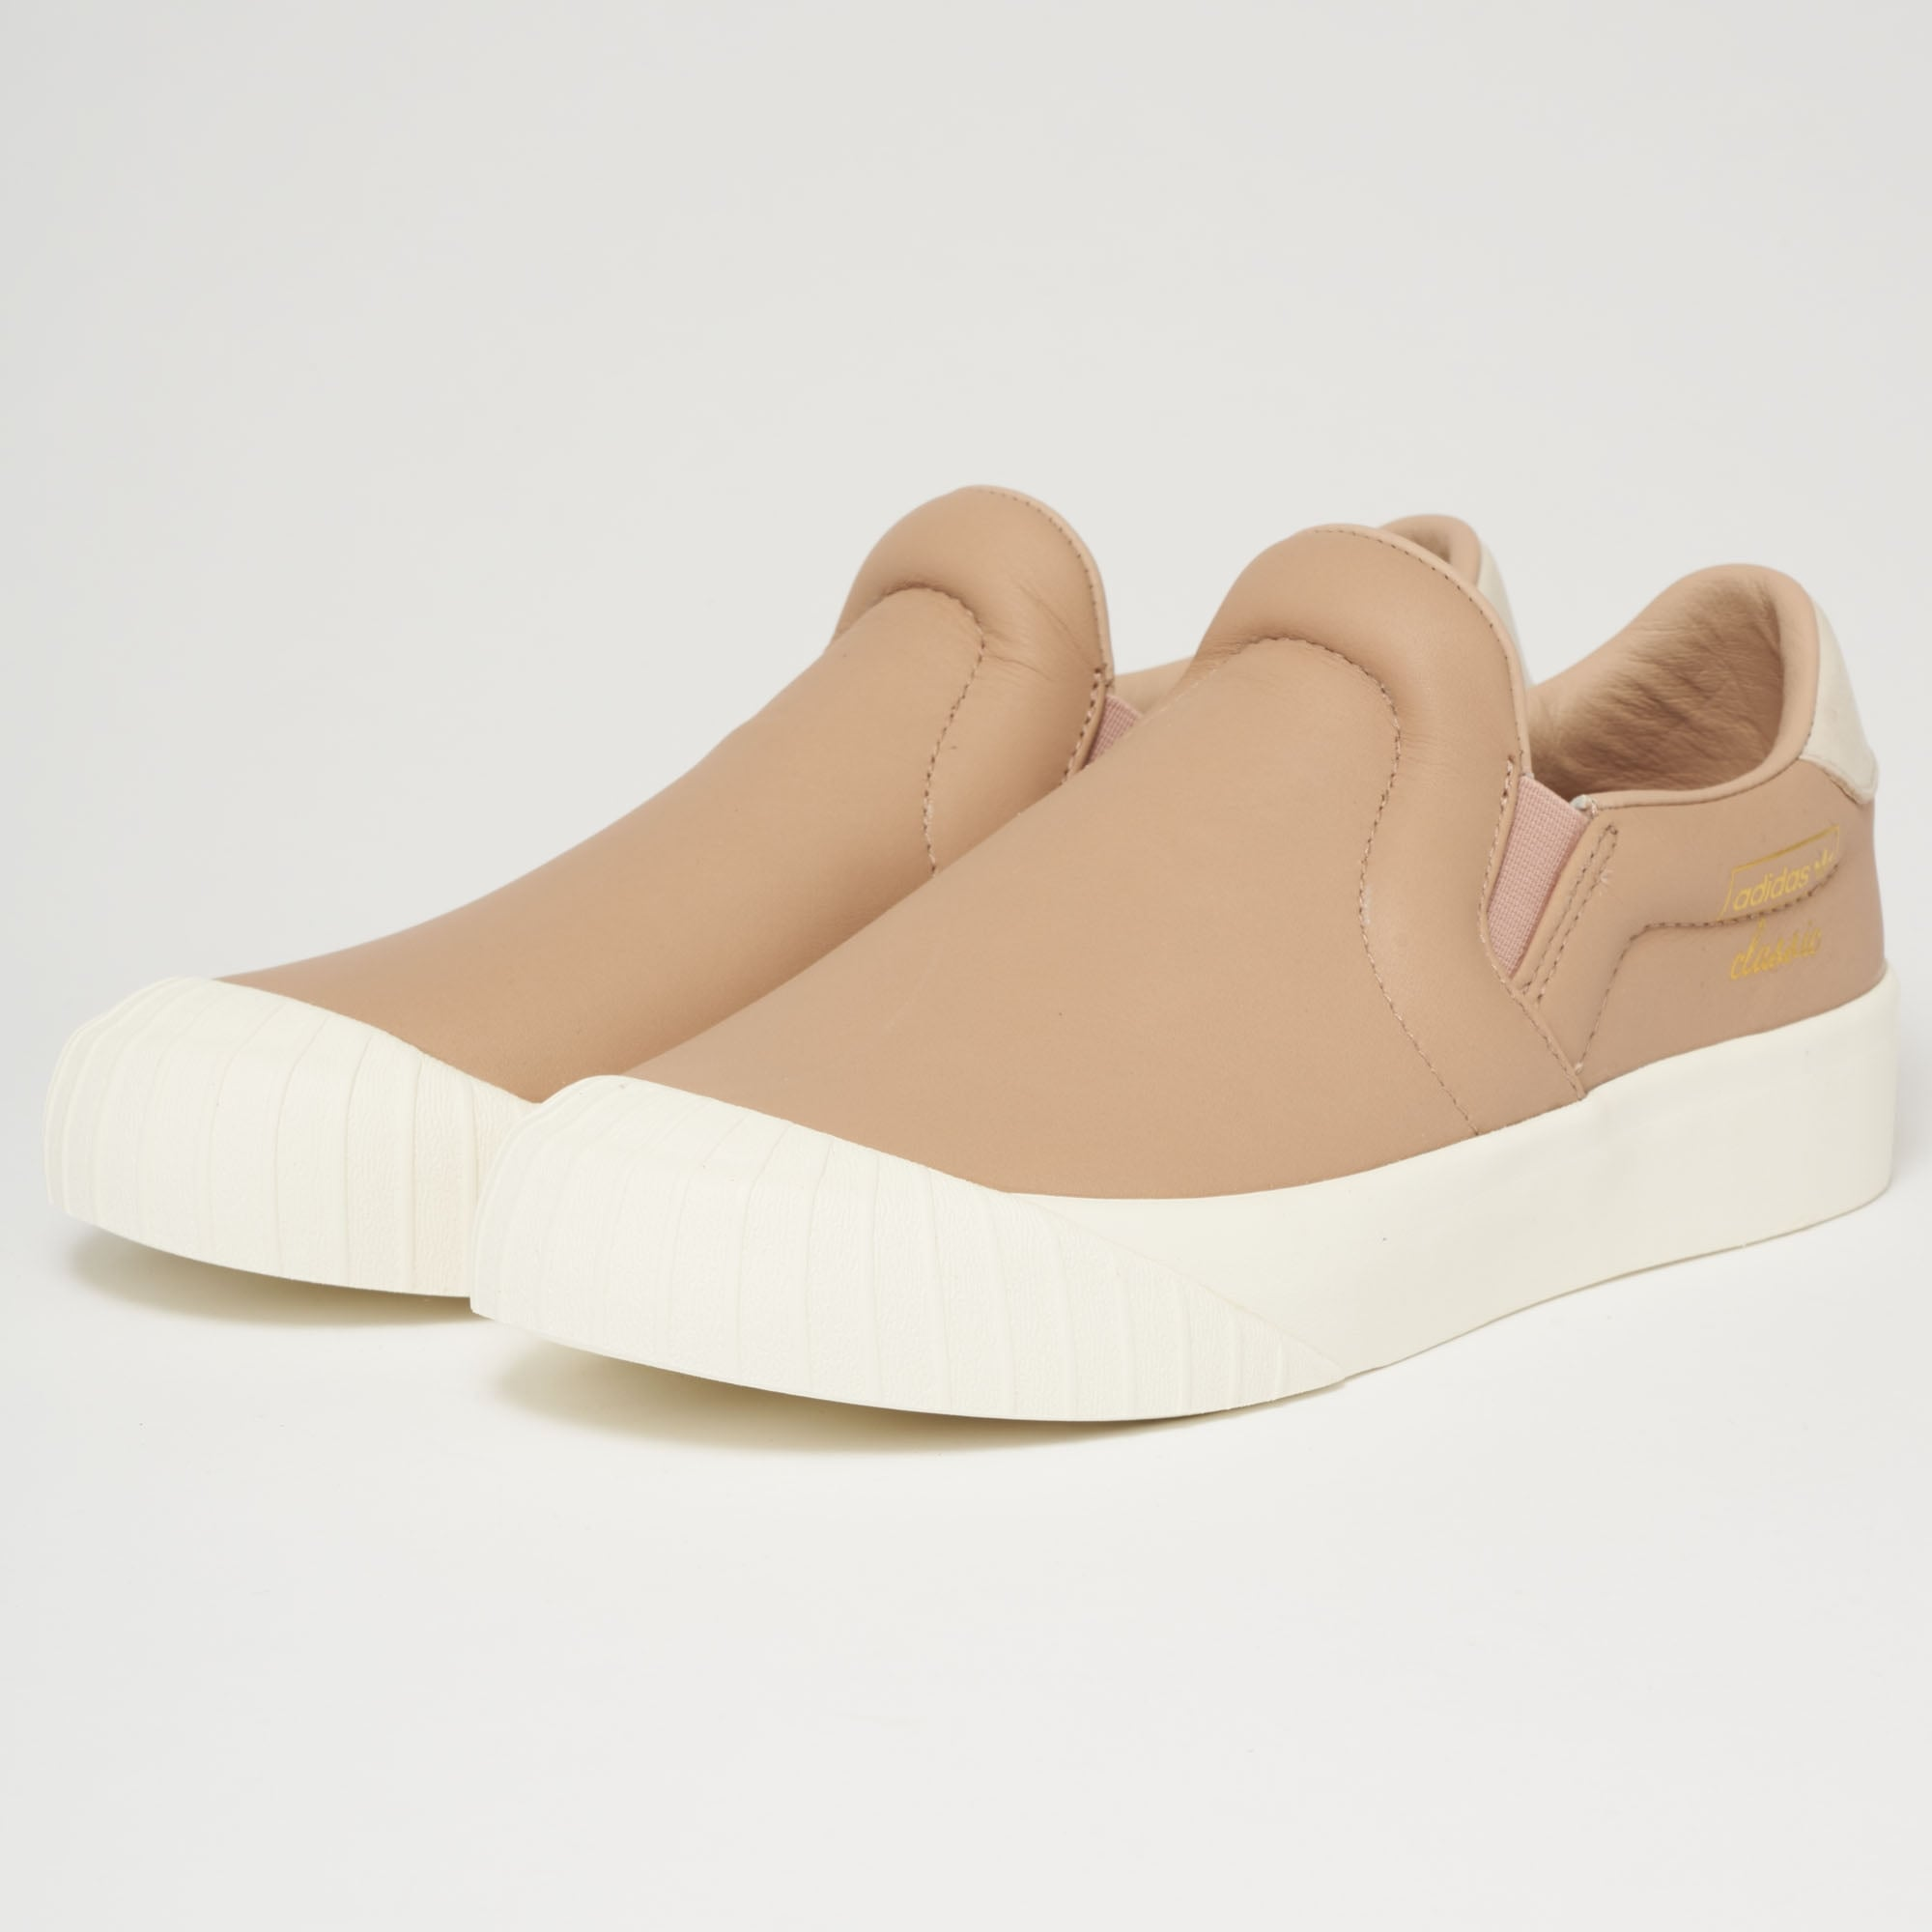 new product ee62e 0bf84 Everyn Slip-On Trainer - Ash Pearl